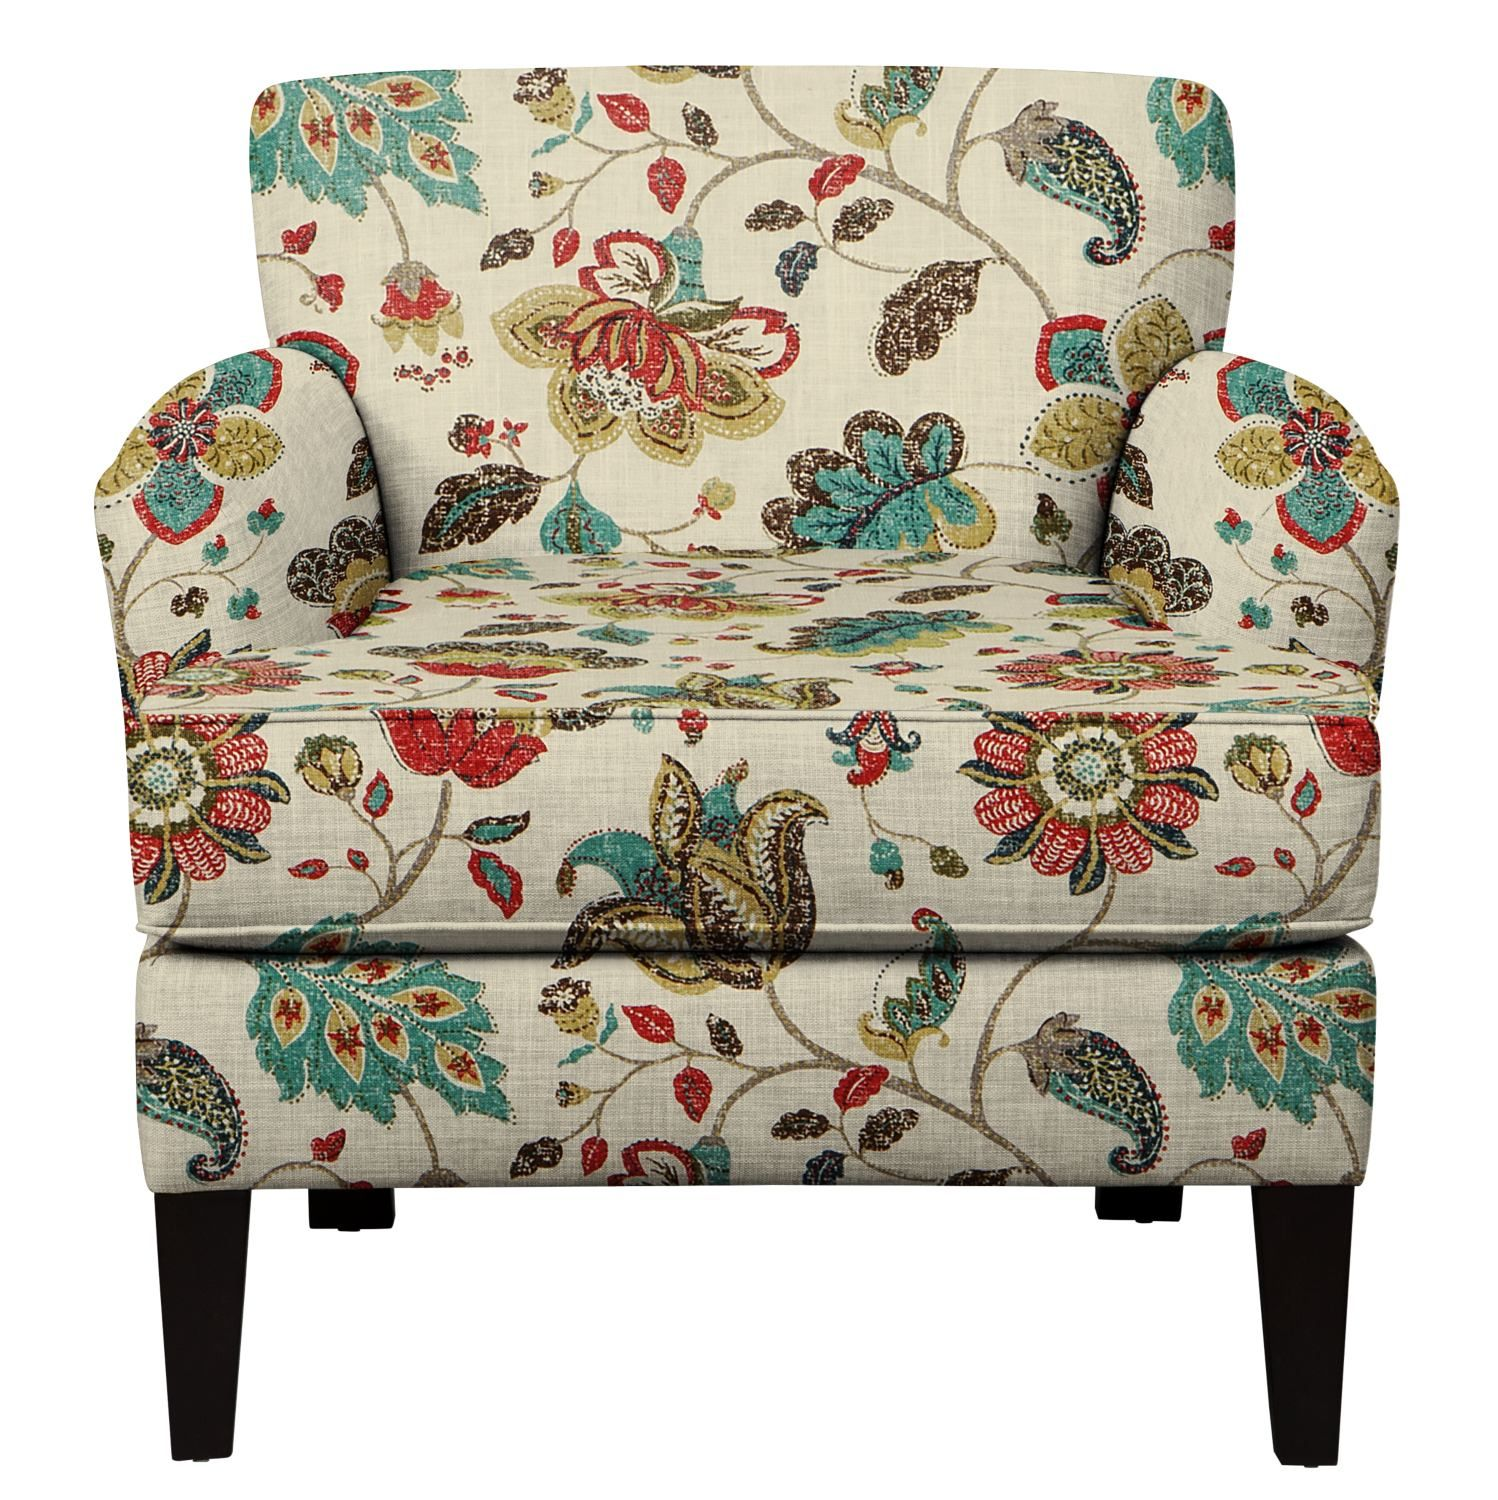 Overstuffed Living Room Chairs: Marcus Chair W/ Spring Mix Poppy Fabric